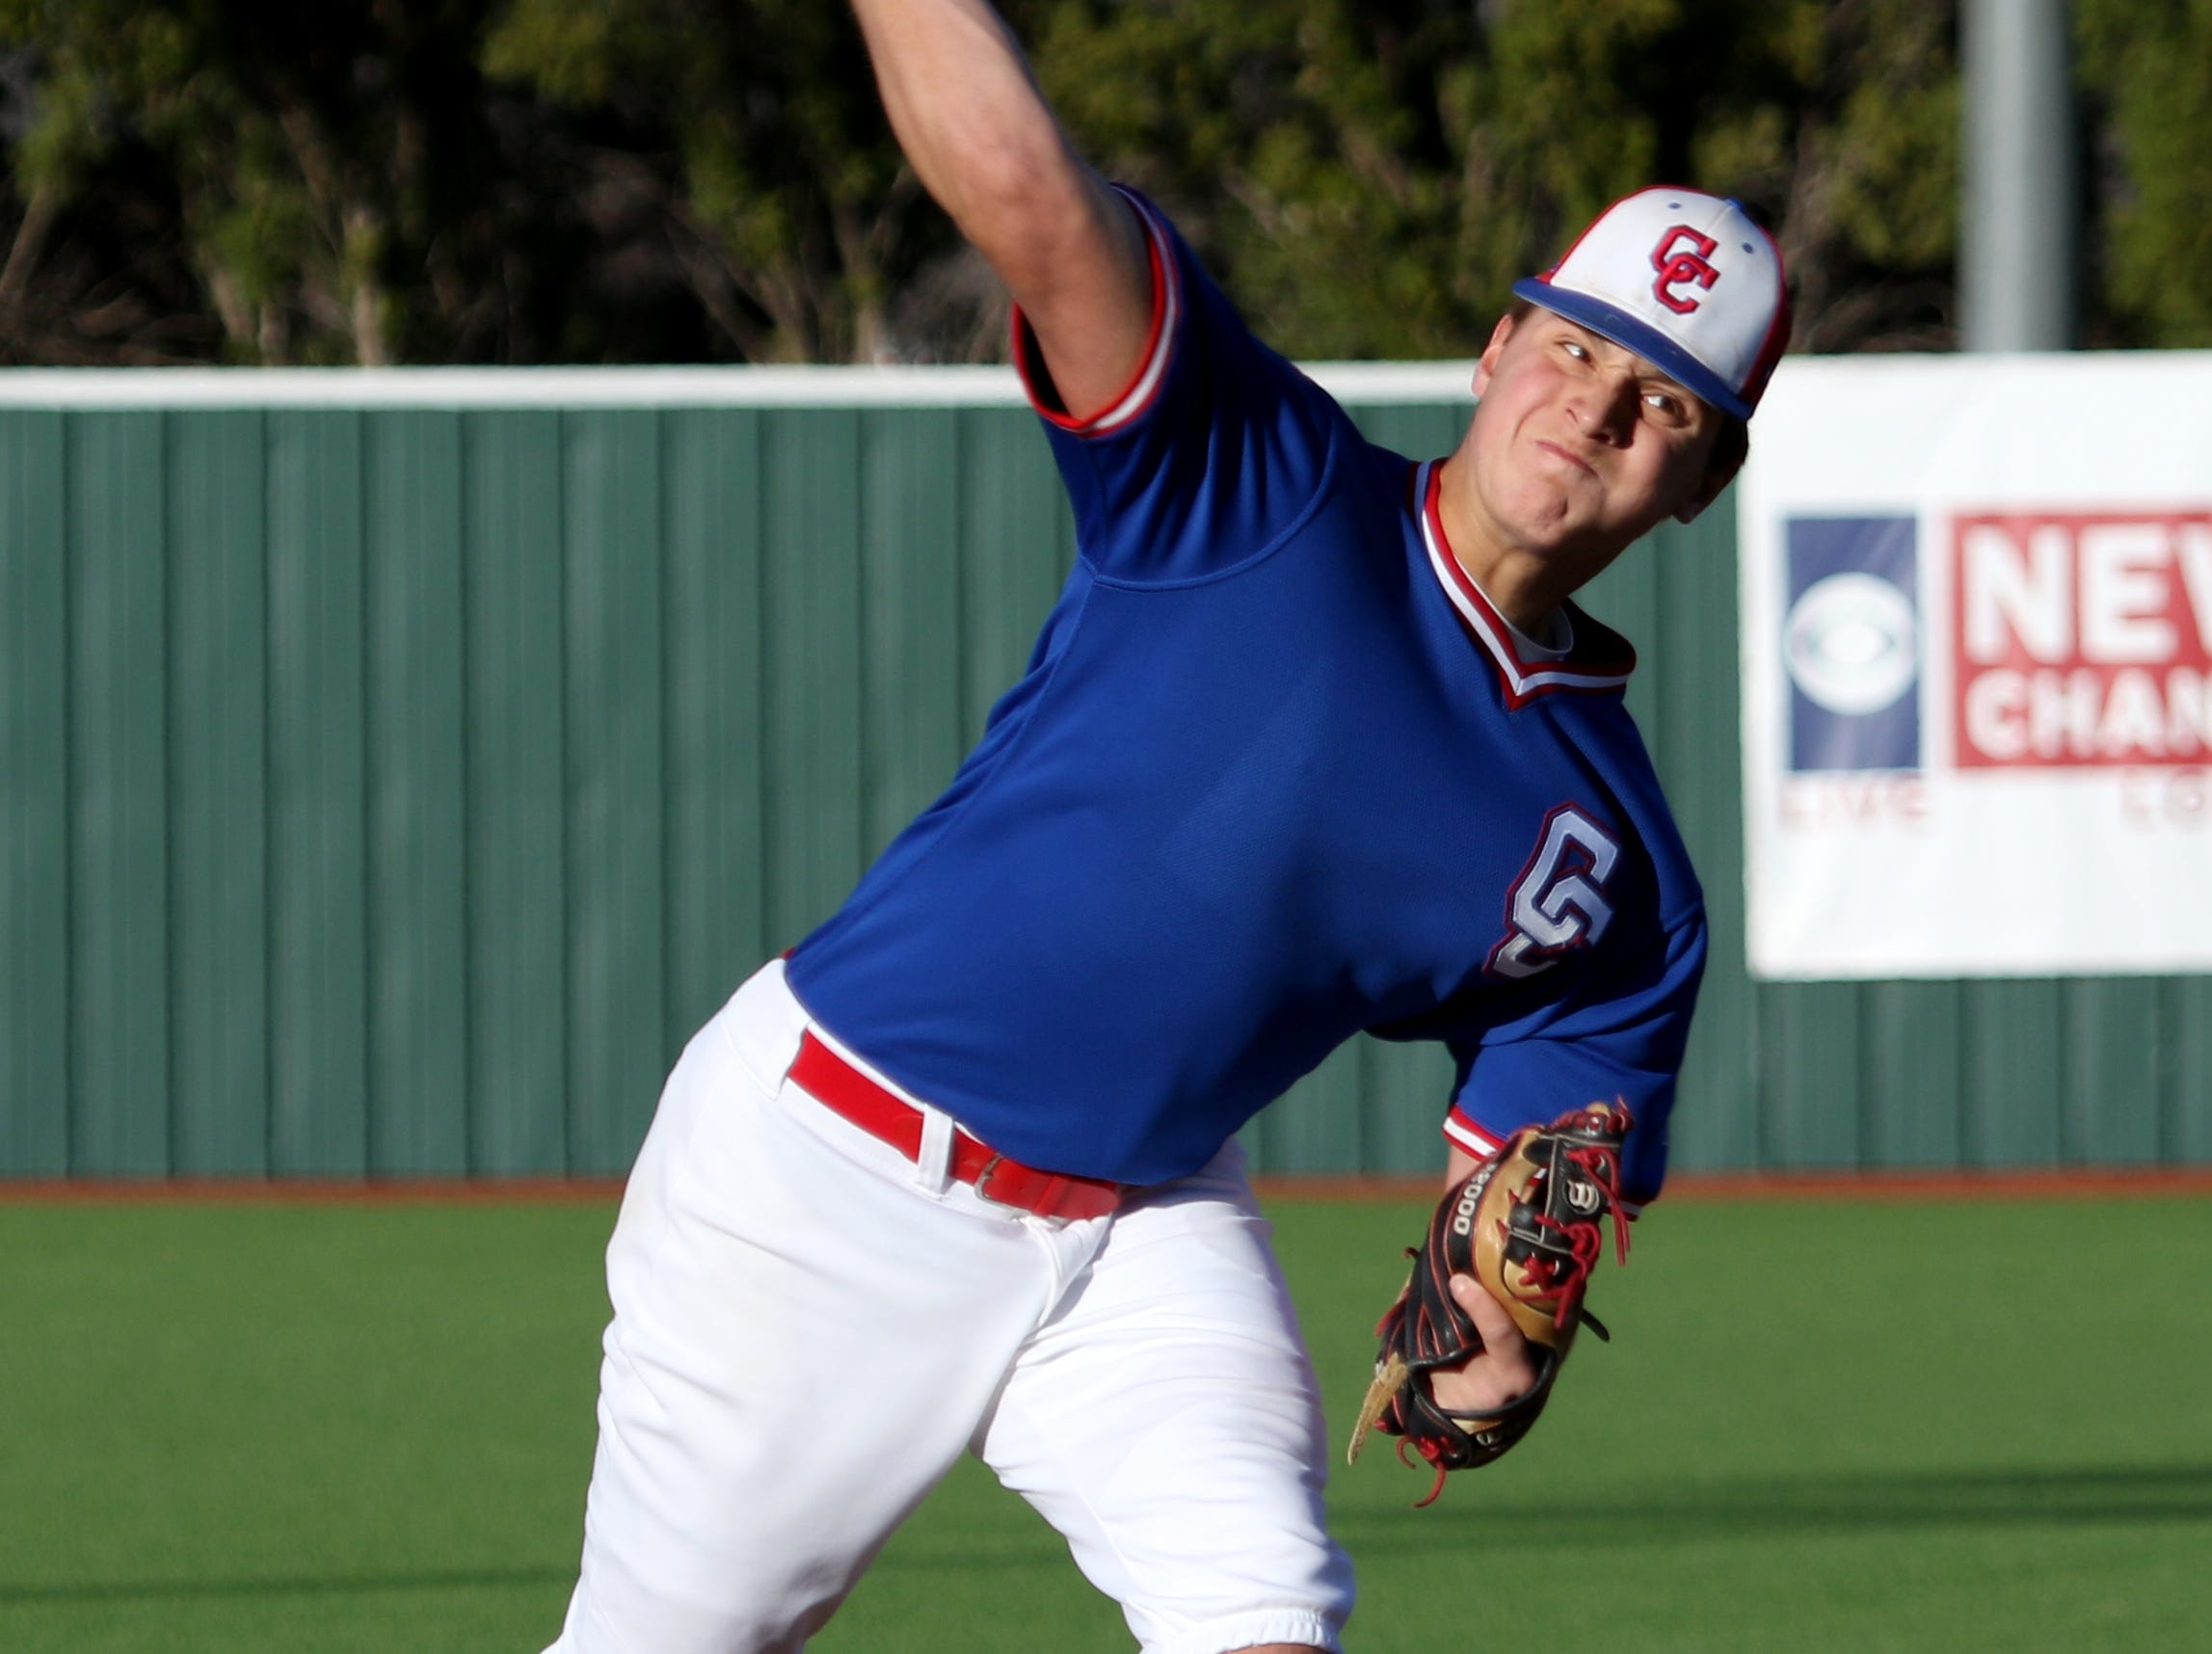 Abilene Cooper's Braiden Hill pitches against Rider Tuesday, March 5, 2019, at Hoskins Field.